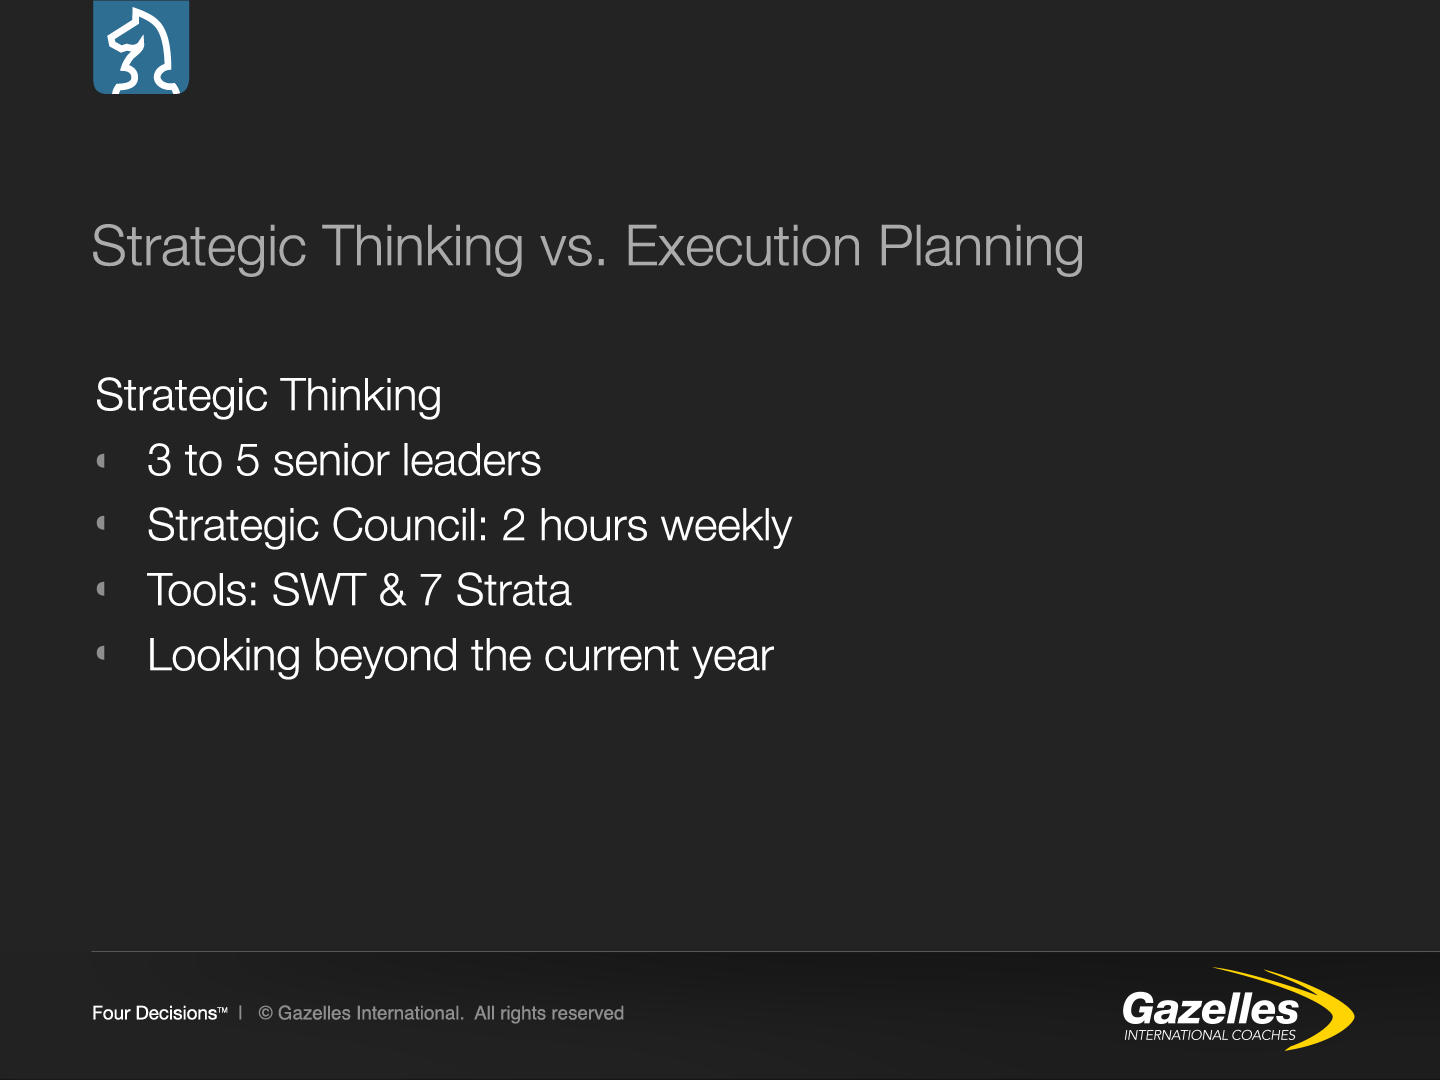 Strategic Thinking vs. Execution Planning.png